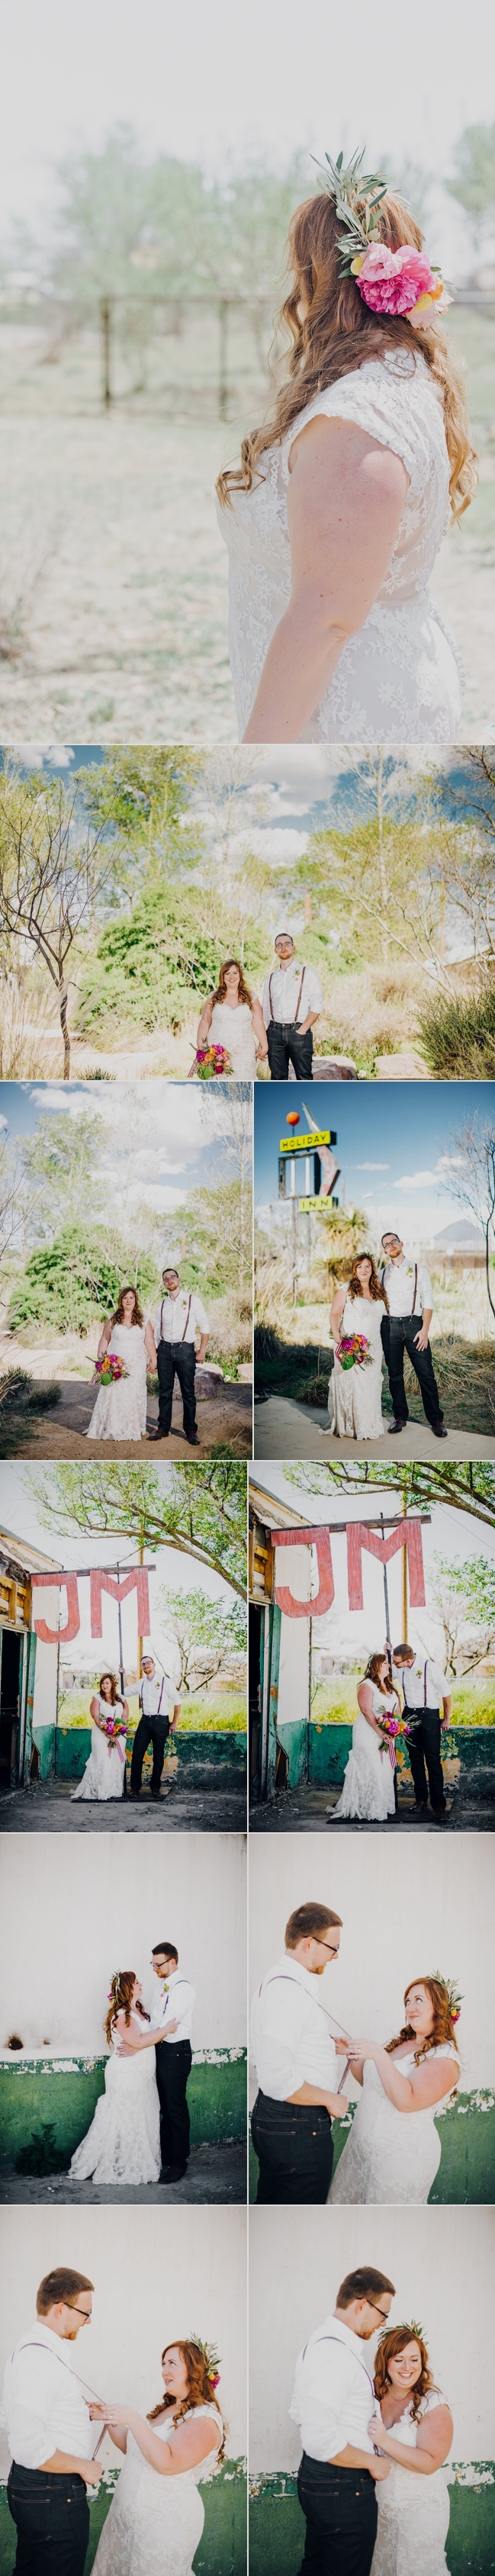 Wedding Photographer Marfa Tx